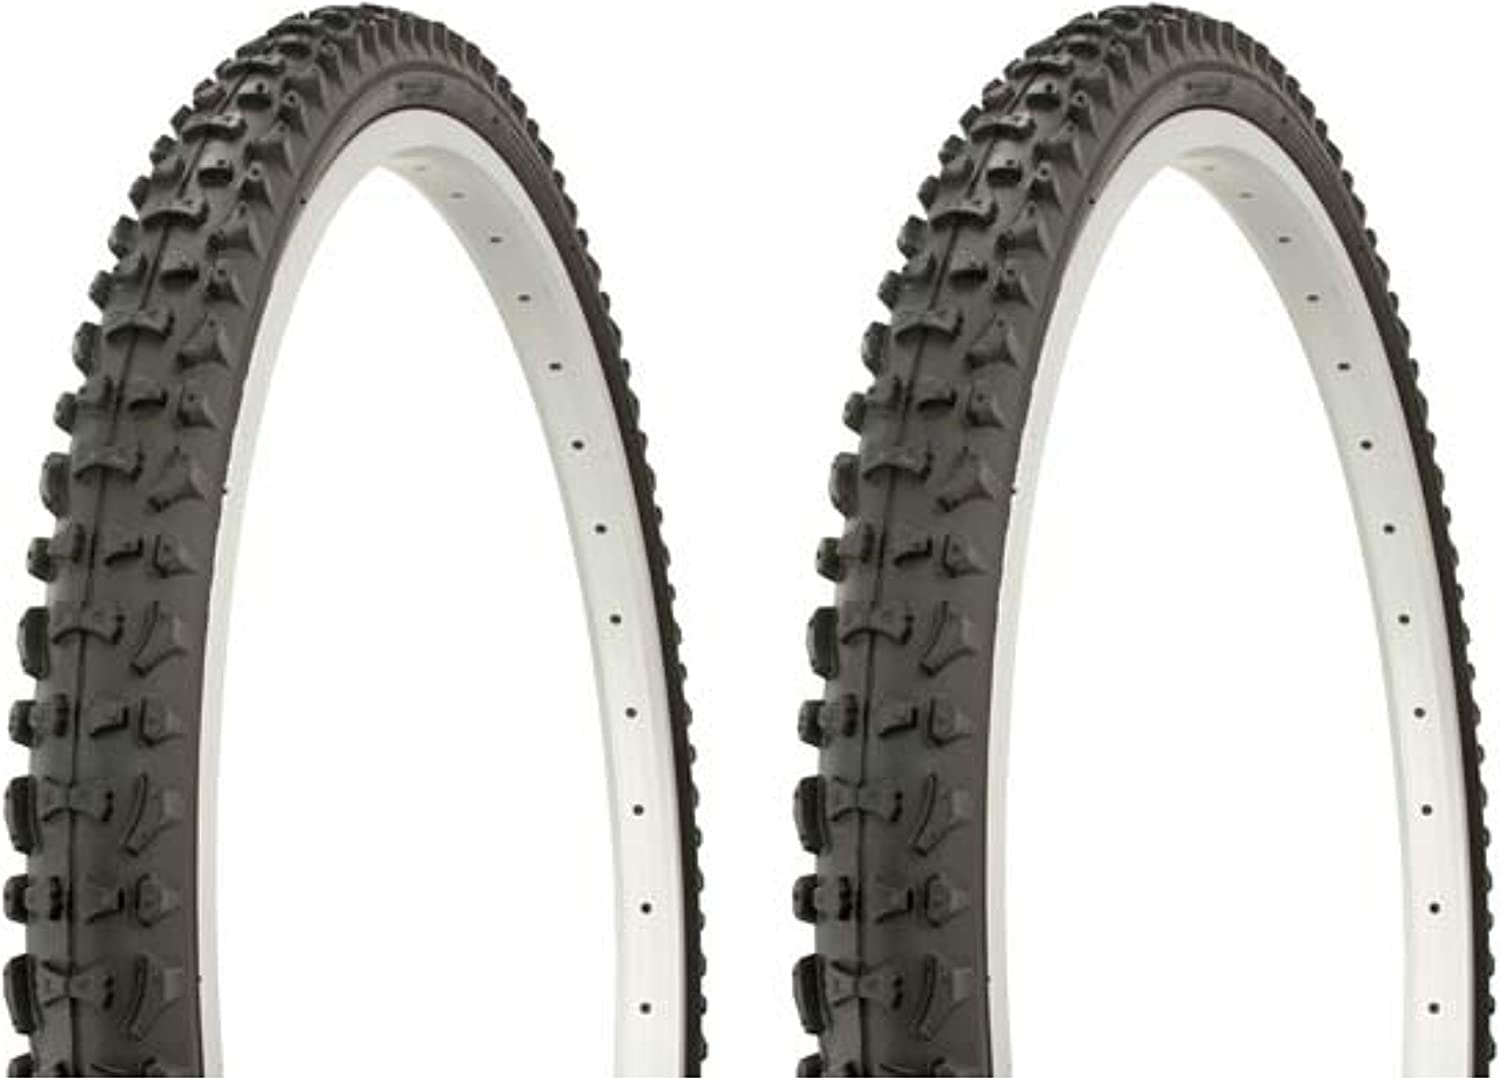 Two Tire Duro 26  x 1.90  Black Black Side Wall HF107A. Bicycle tire, bike tire, beach cruiser bike tire, cruiser bike tire